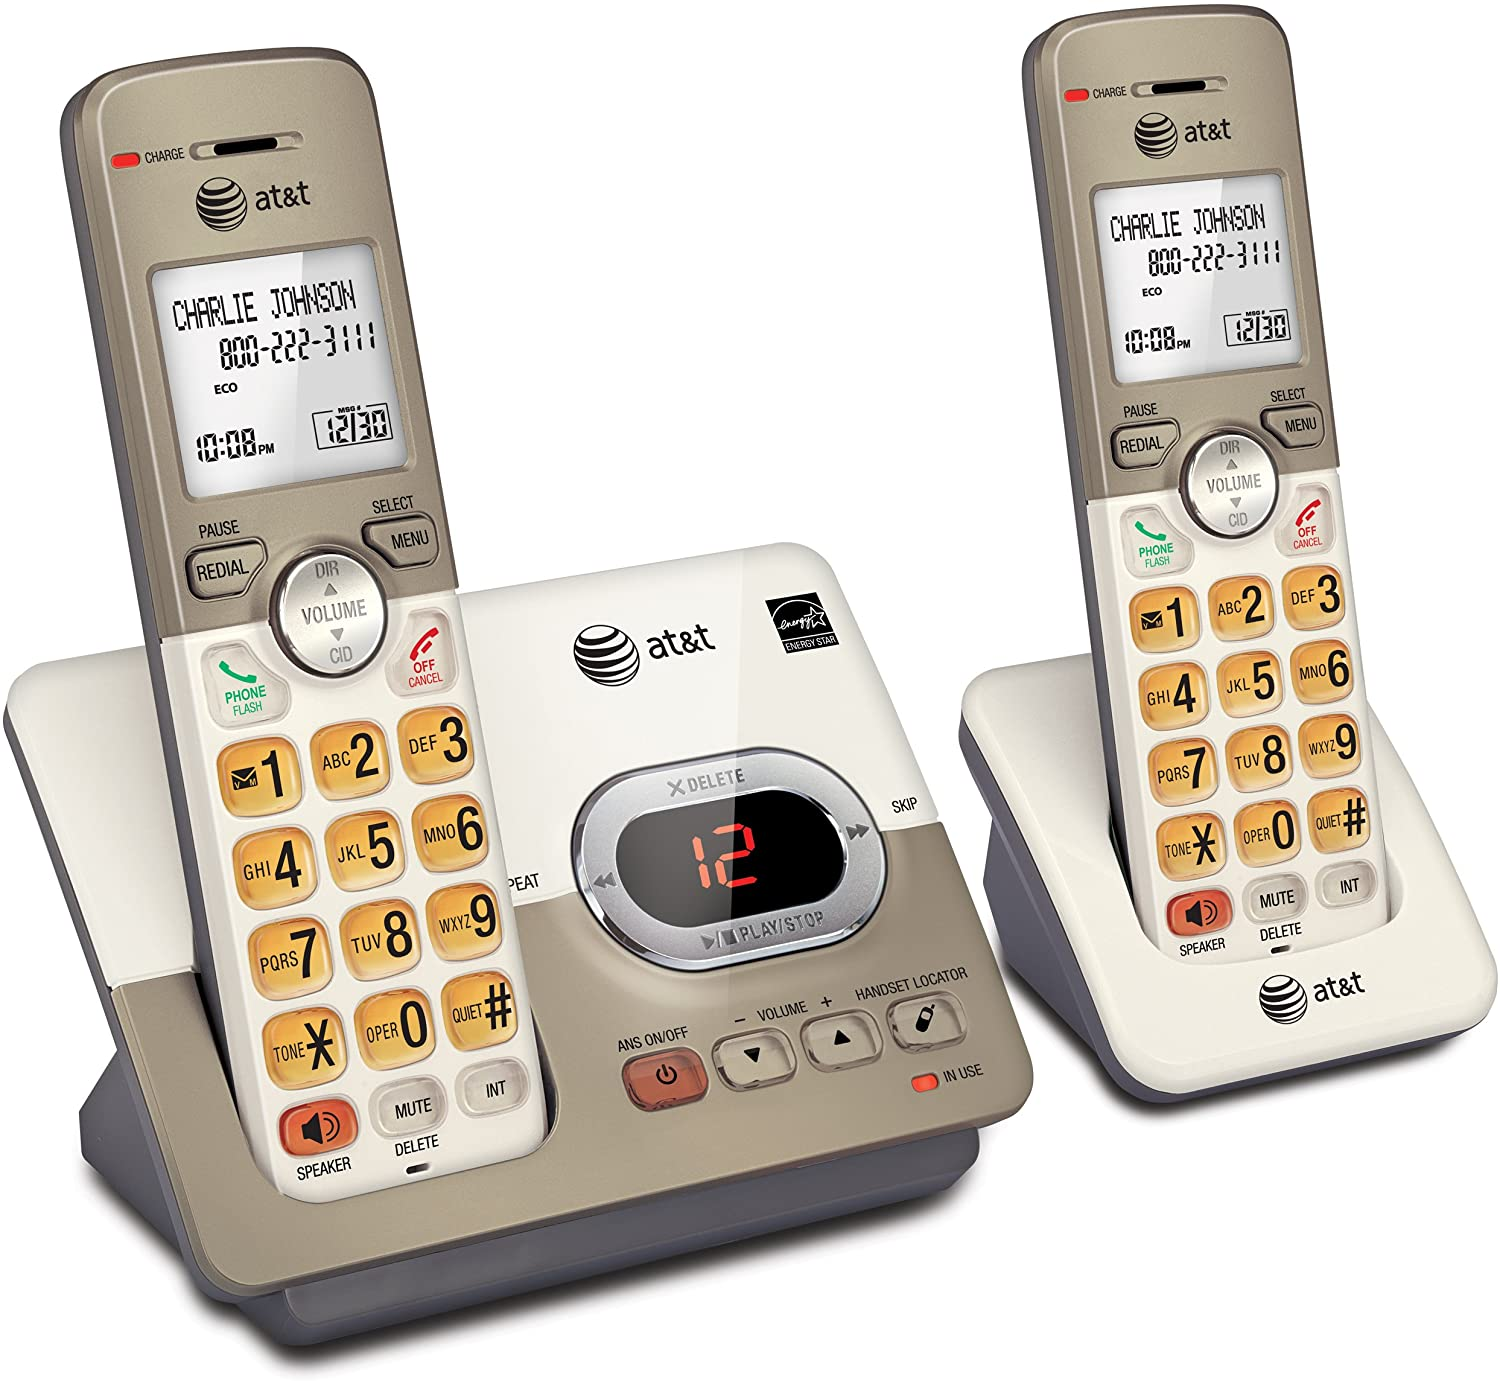 AT&T Expandable Cordless Phone & Answering Machine